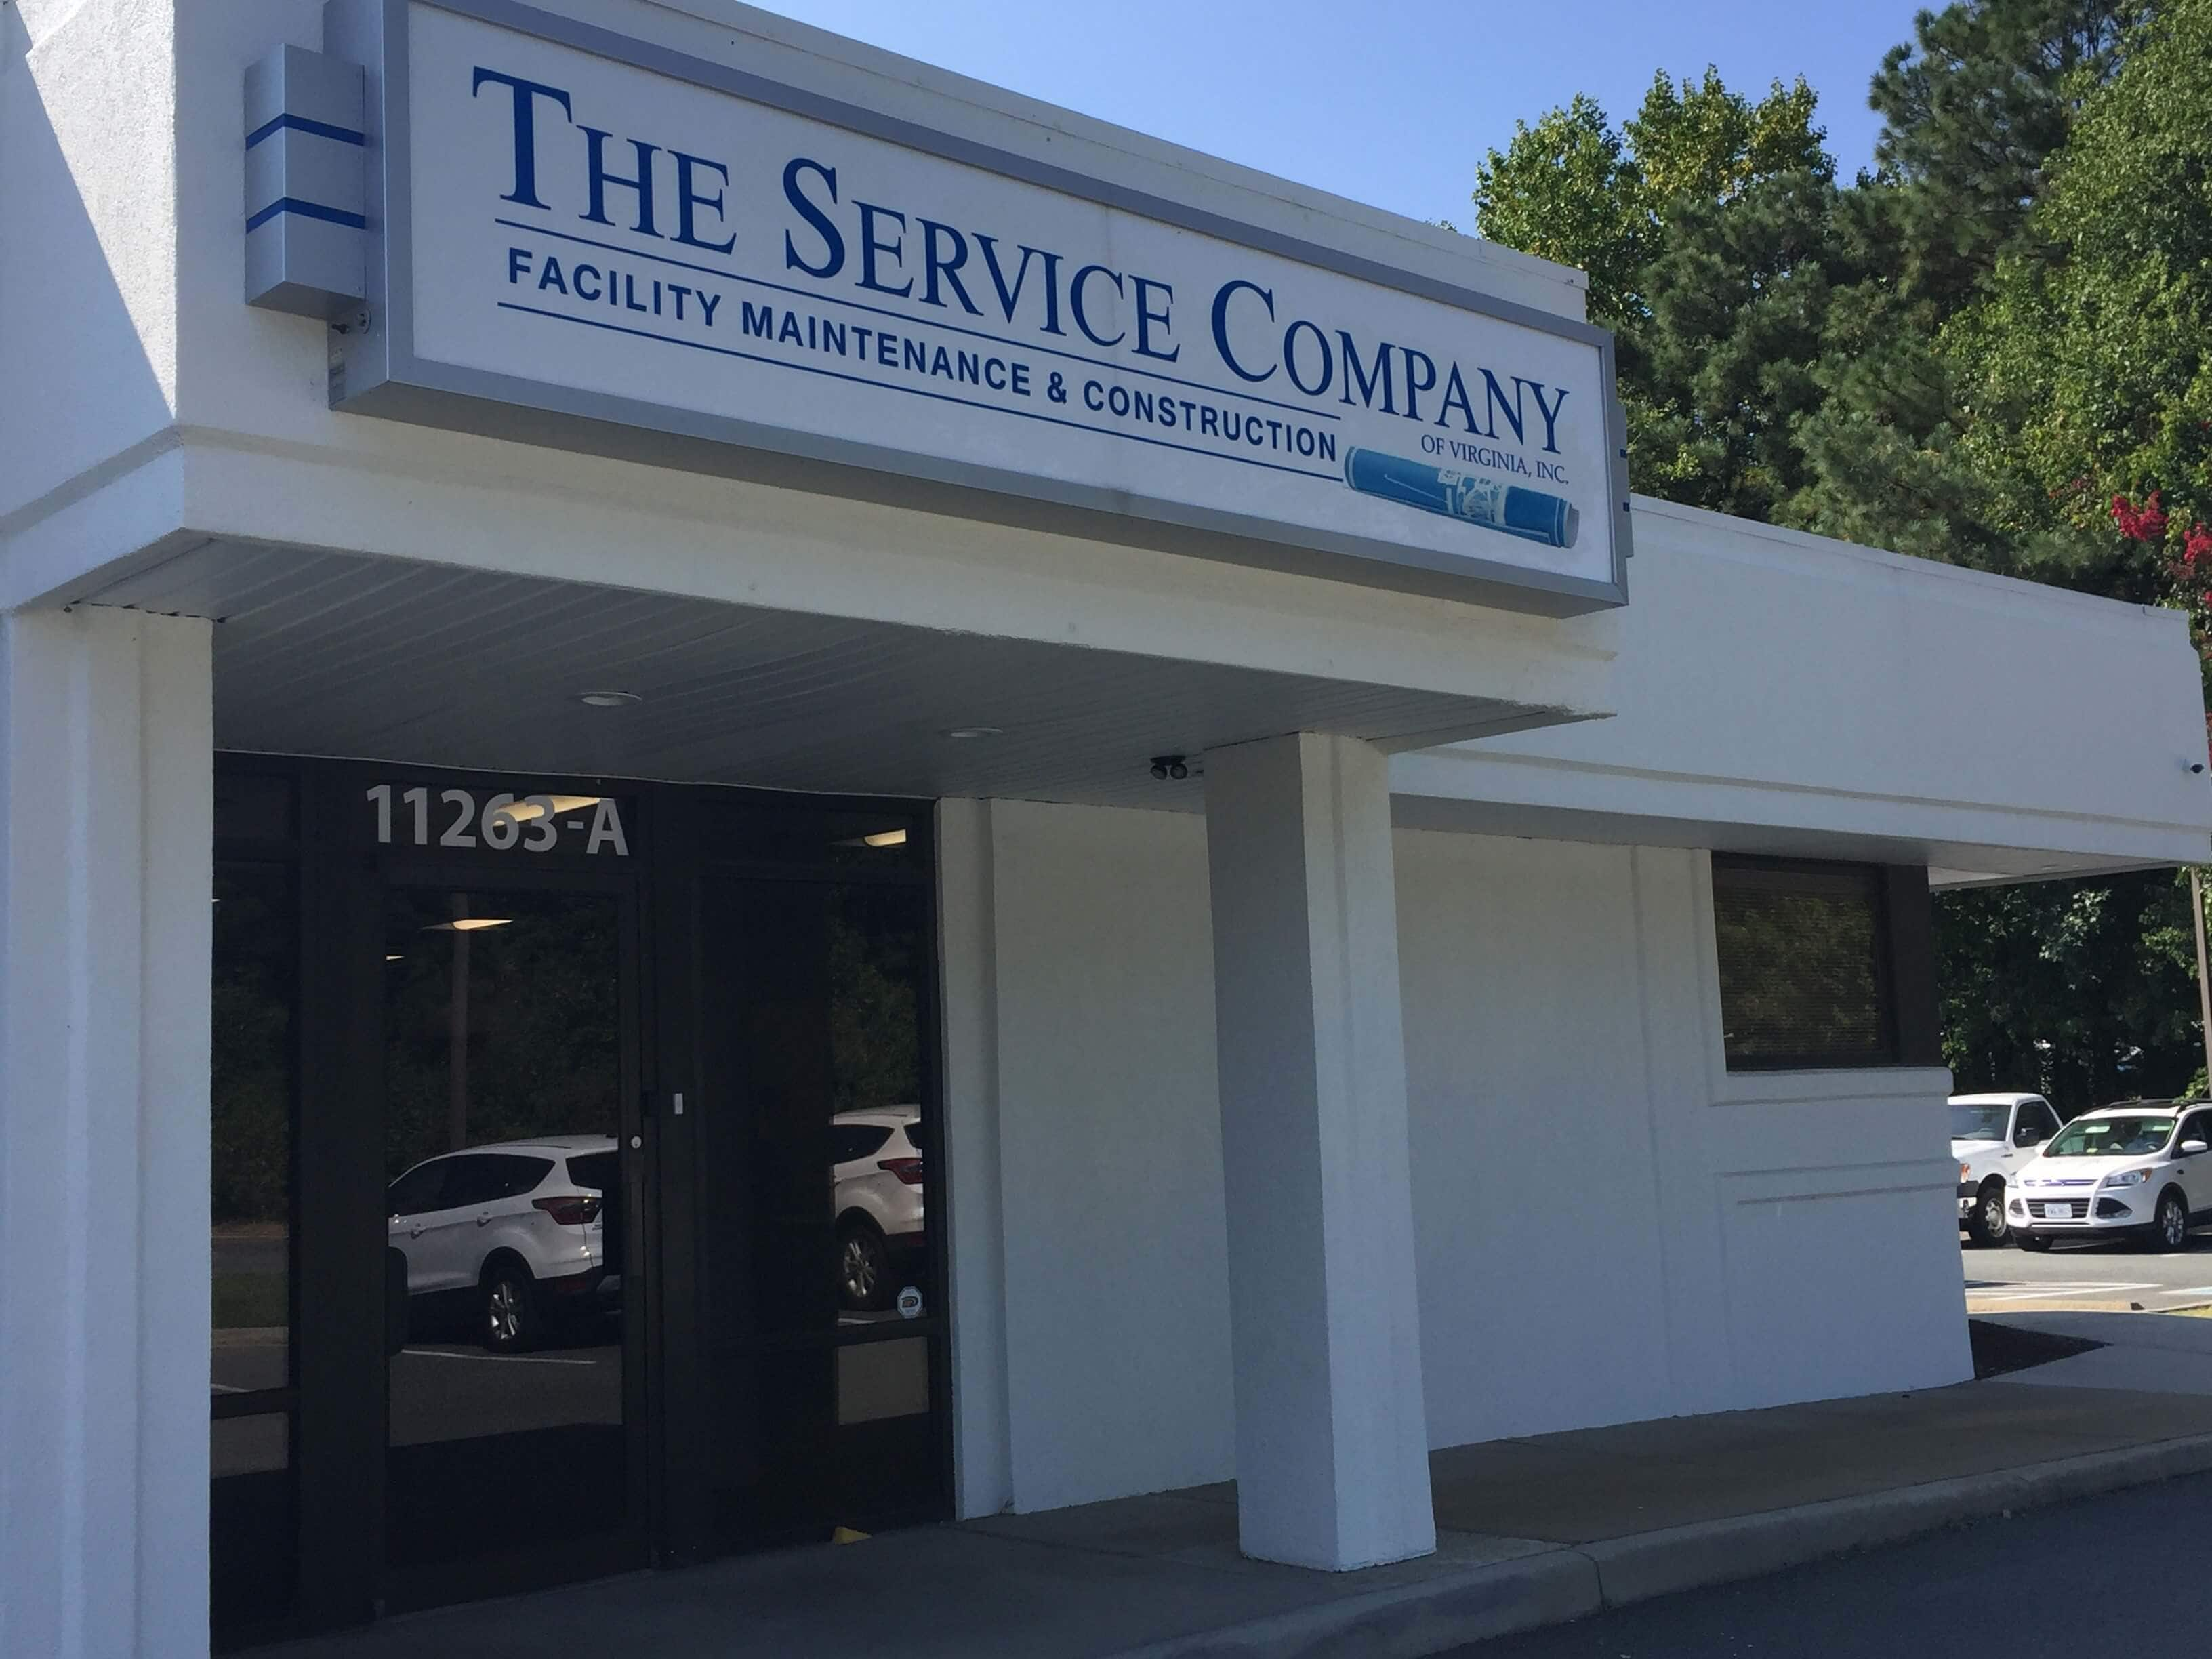 The Service Company Sign